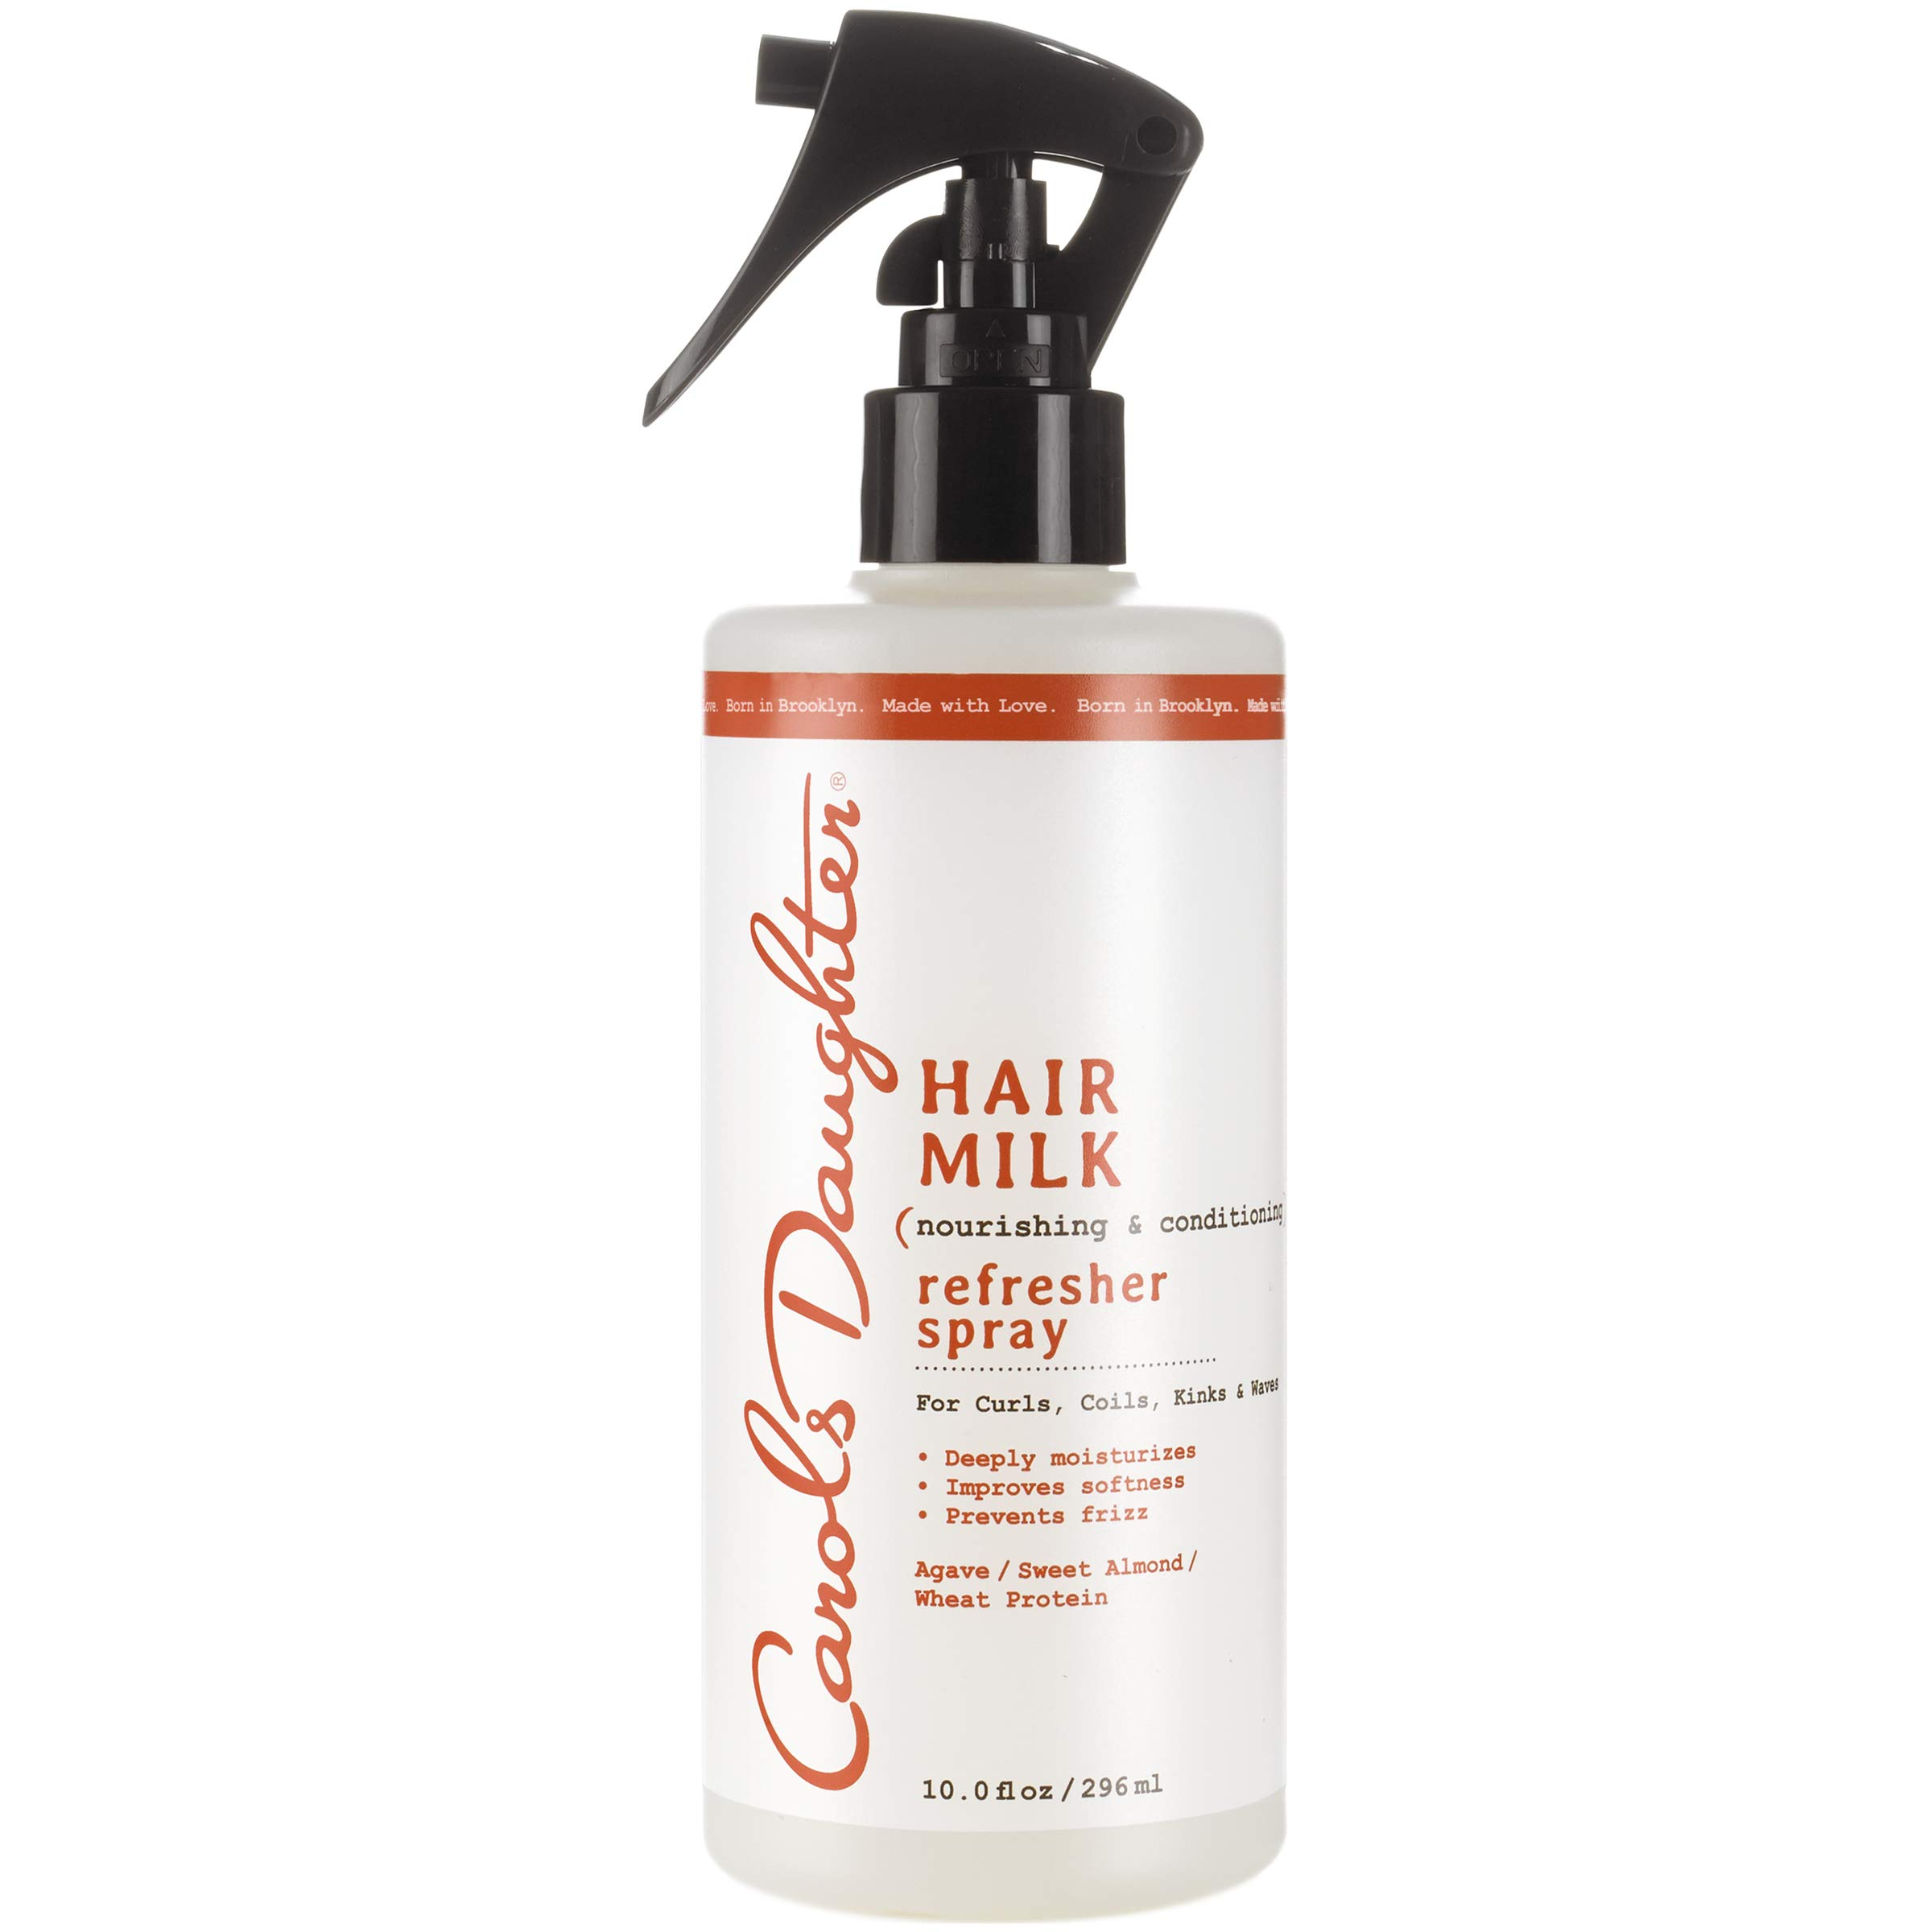 Curly Hair Products by Carol's Daughter, Hair Milk Curl Refresher Spray For Curls, Coils and Waves, with Agave, Sweet Almond and Wheat Protein, Hair Refresher Spray, 10 Fl Oz (Packaging May Vary) by Carol's Daughter